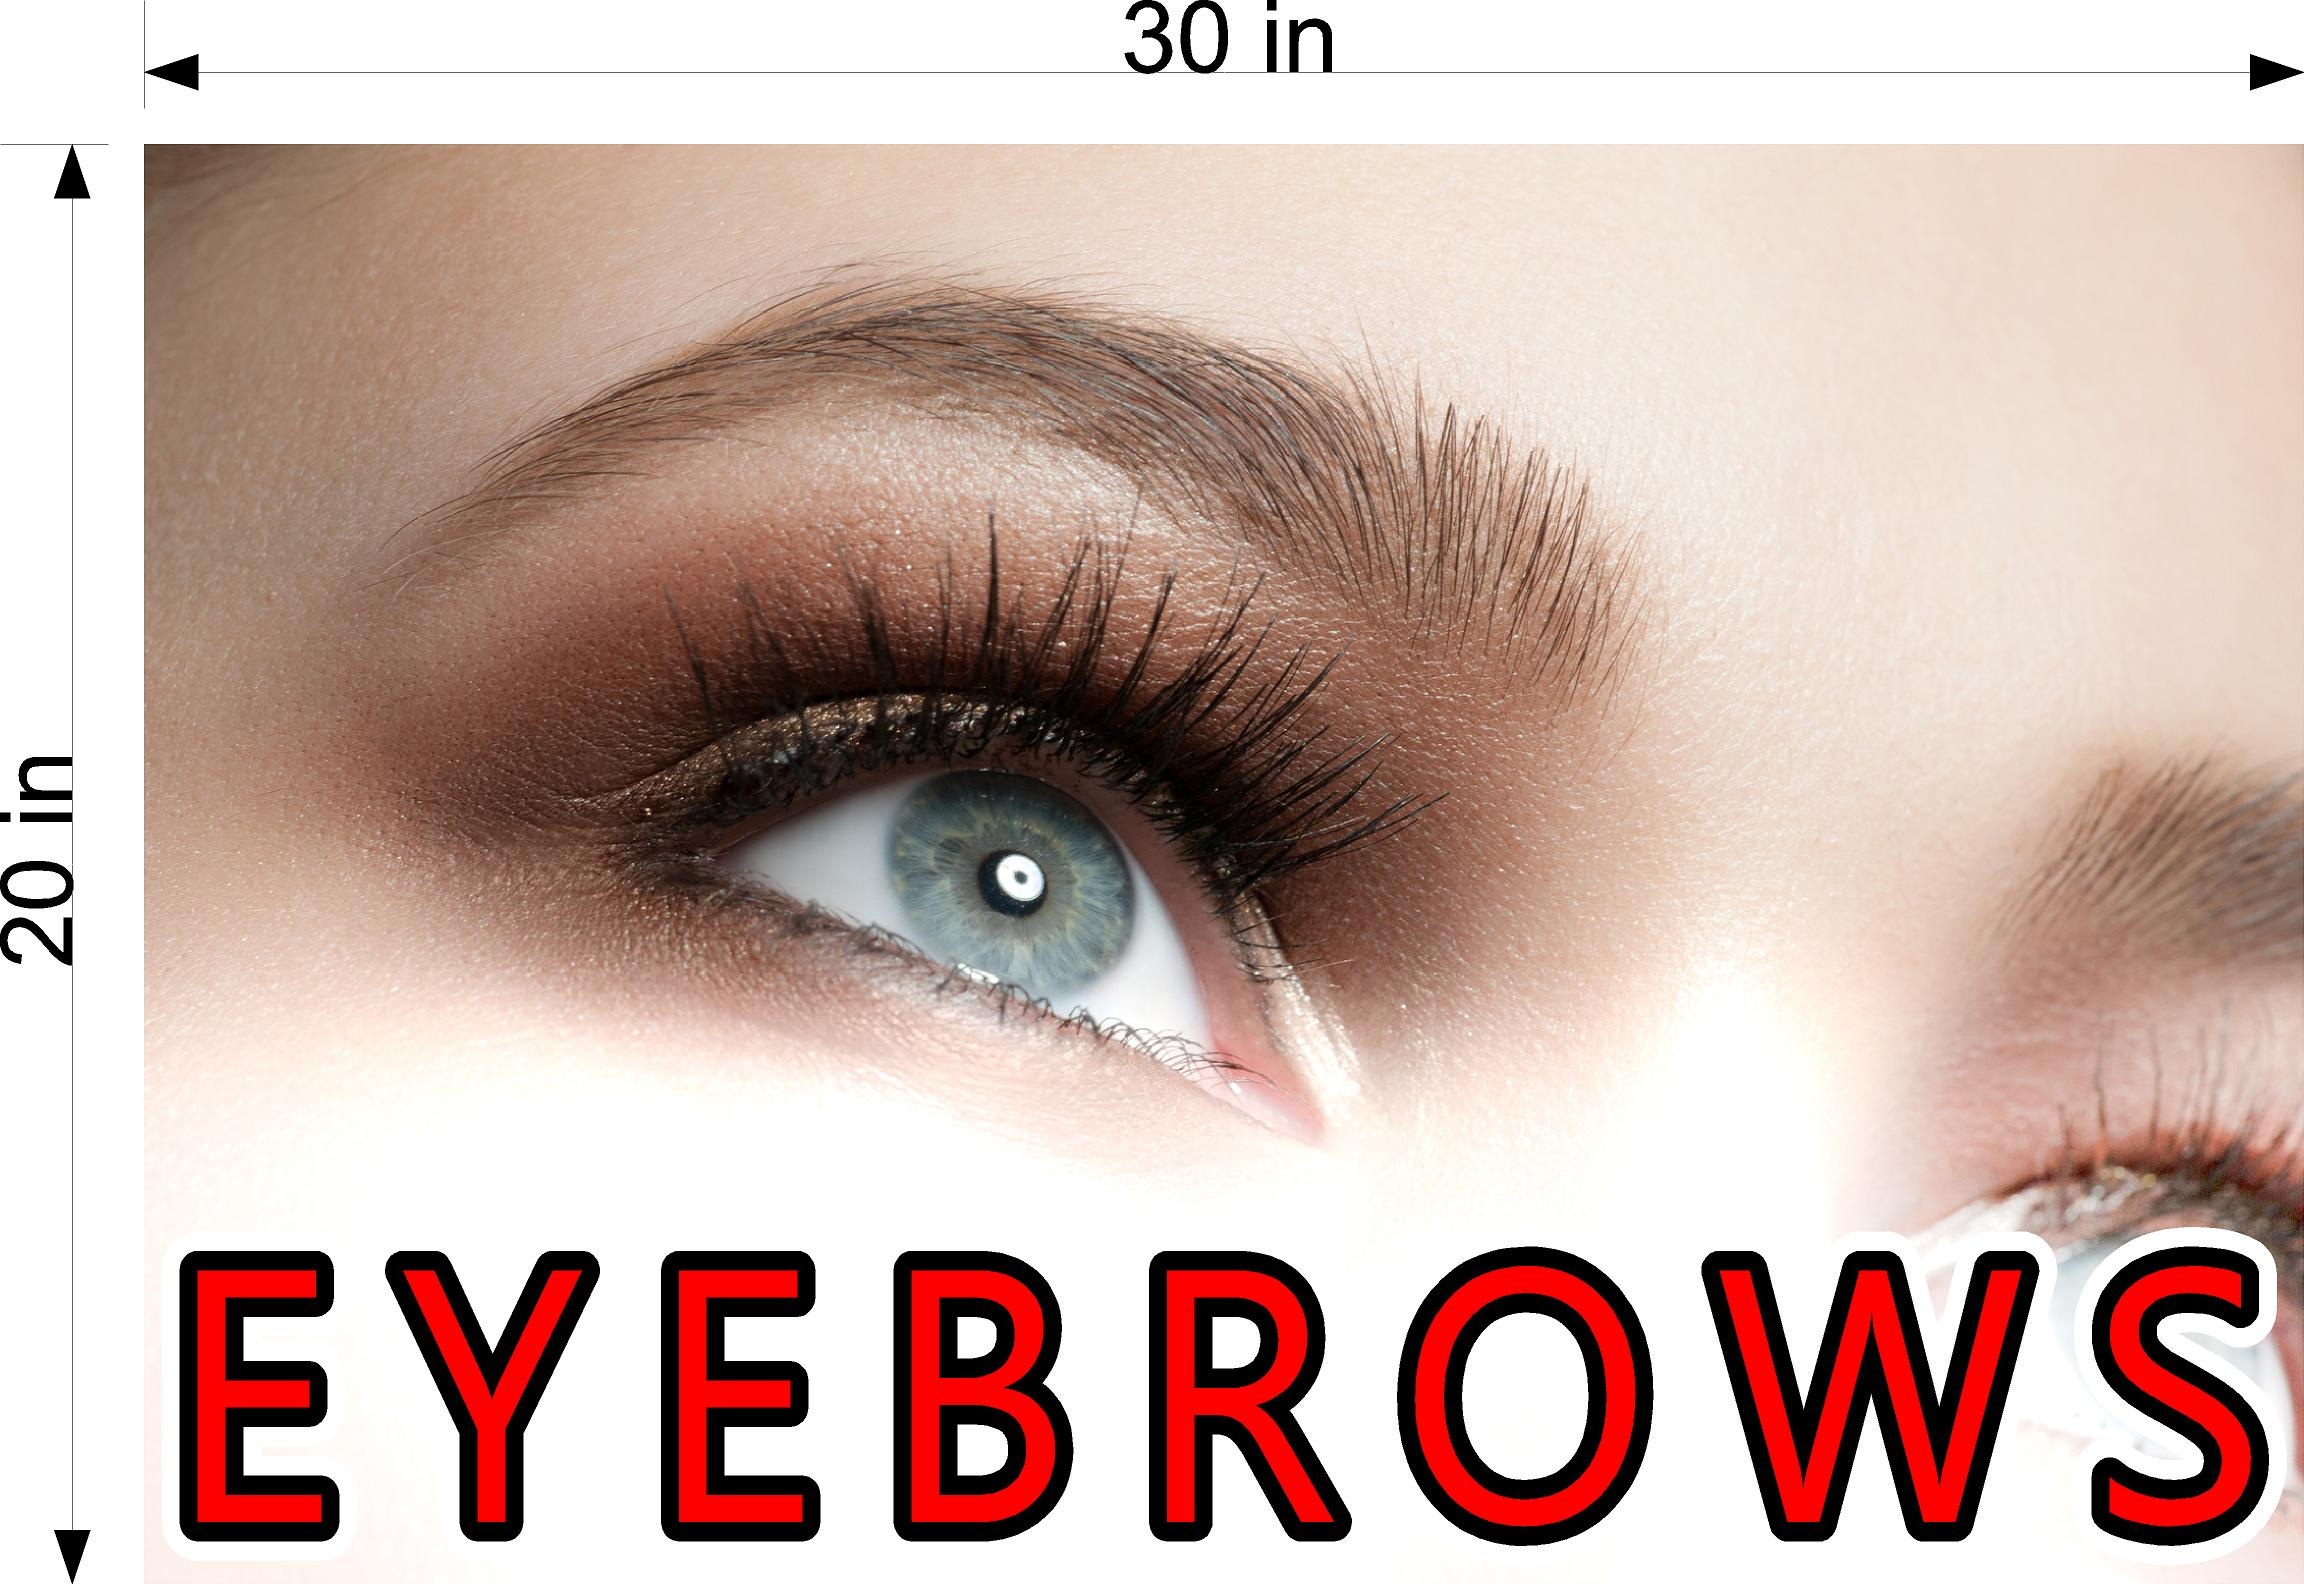 Eyebrows 01 Photo-Realistic Paper Poster Premium Matte Interior Inside Sign Advertising Marketing Wall Window Non-Laminated Horizontal Horizontal